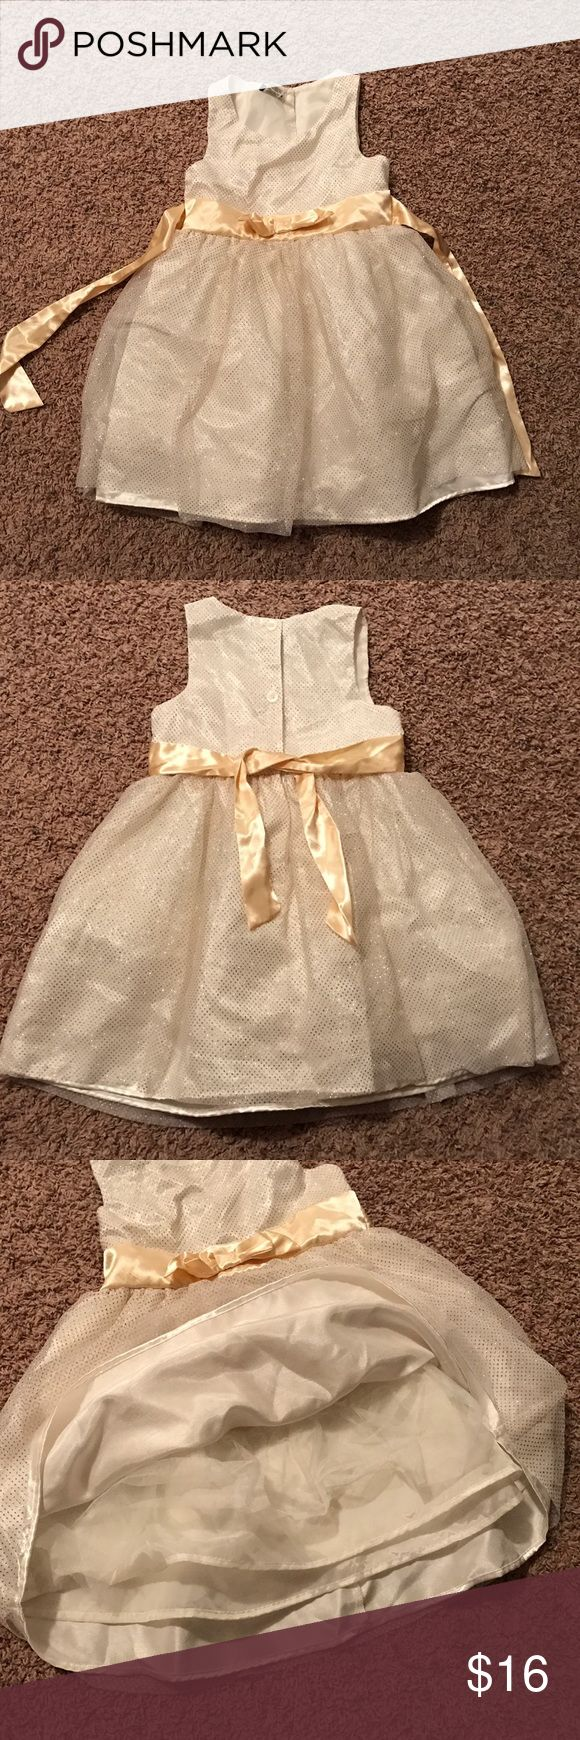 Holiday Editions Cream and Gold Sleeveless Dress Beautiful, new without tags. This dress is gorgeous in person. So sparkly with the perfect shade of gold. It's lined and has crinoline. Buttons in back. Gold satin tie back. Girls small/6x. ❤️ offers accepted and bundle discounts ❤️ holiday editions Dresses Formal